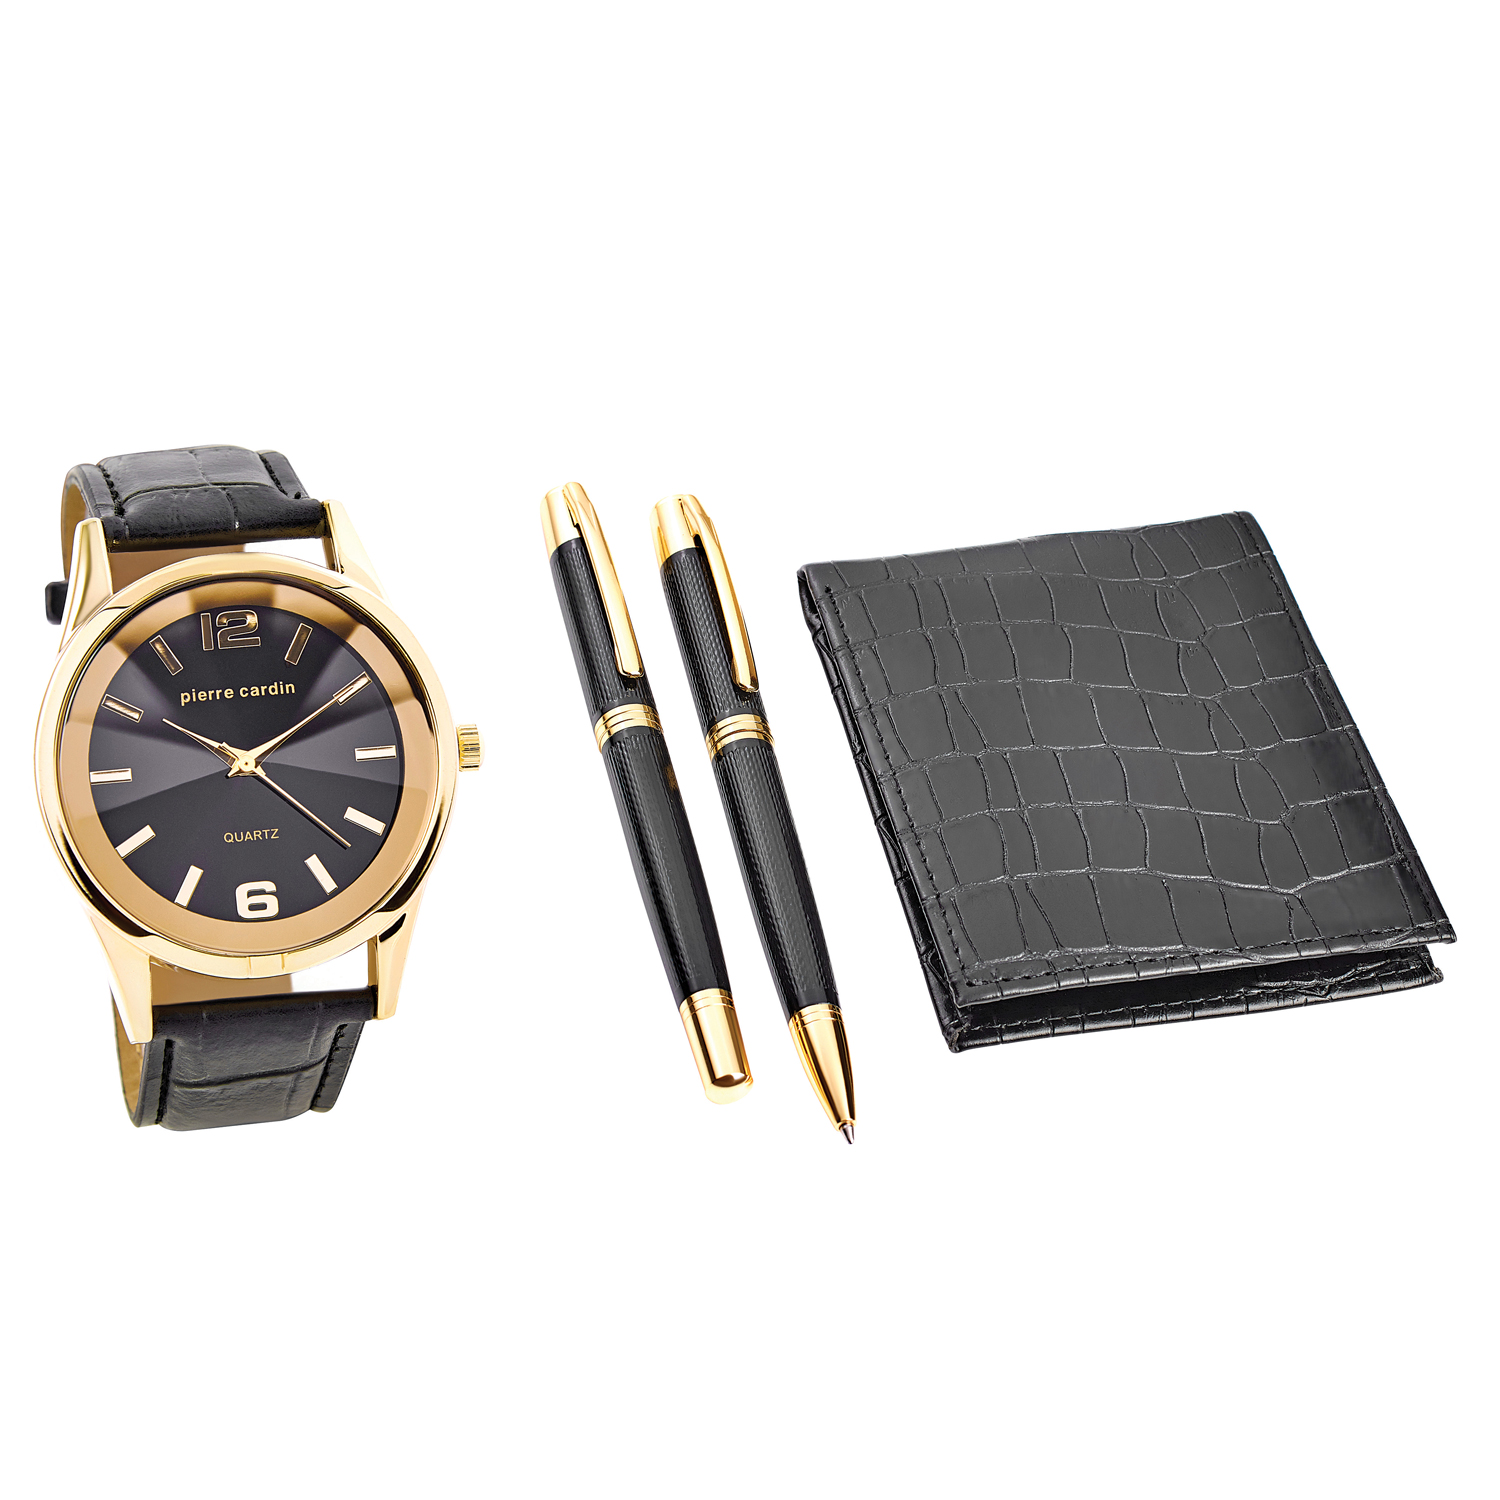 Pierre Cardin Gift Set Watch & Wallet & Pen PCX7870EMI Gold